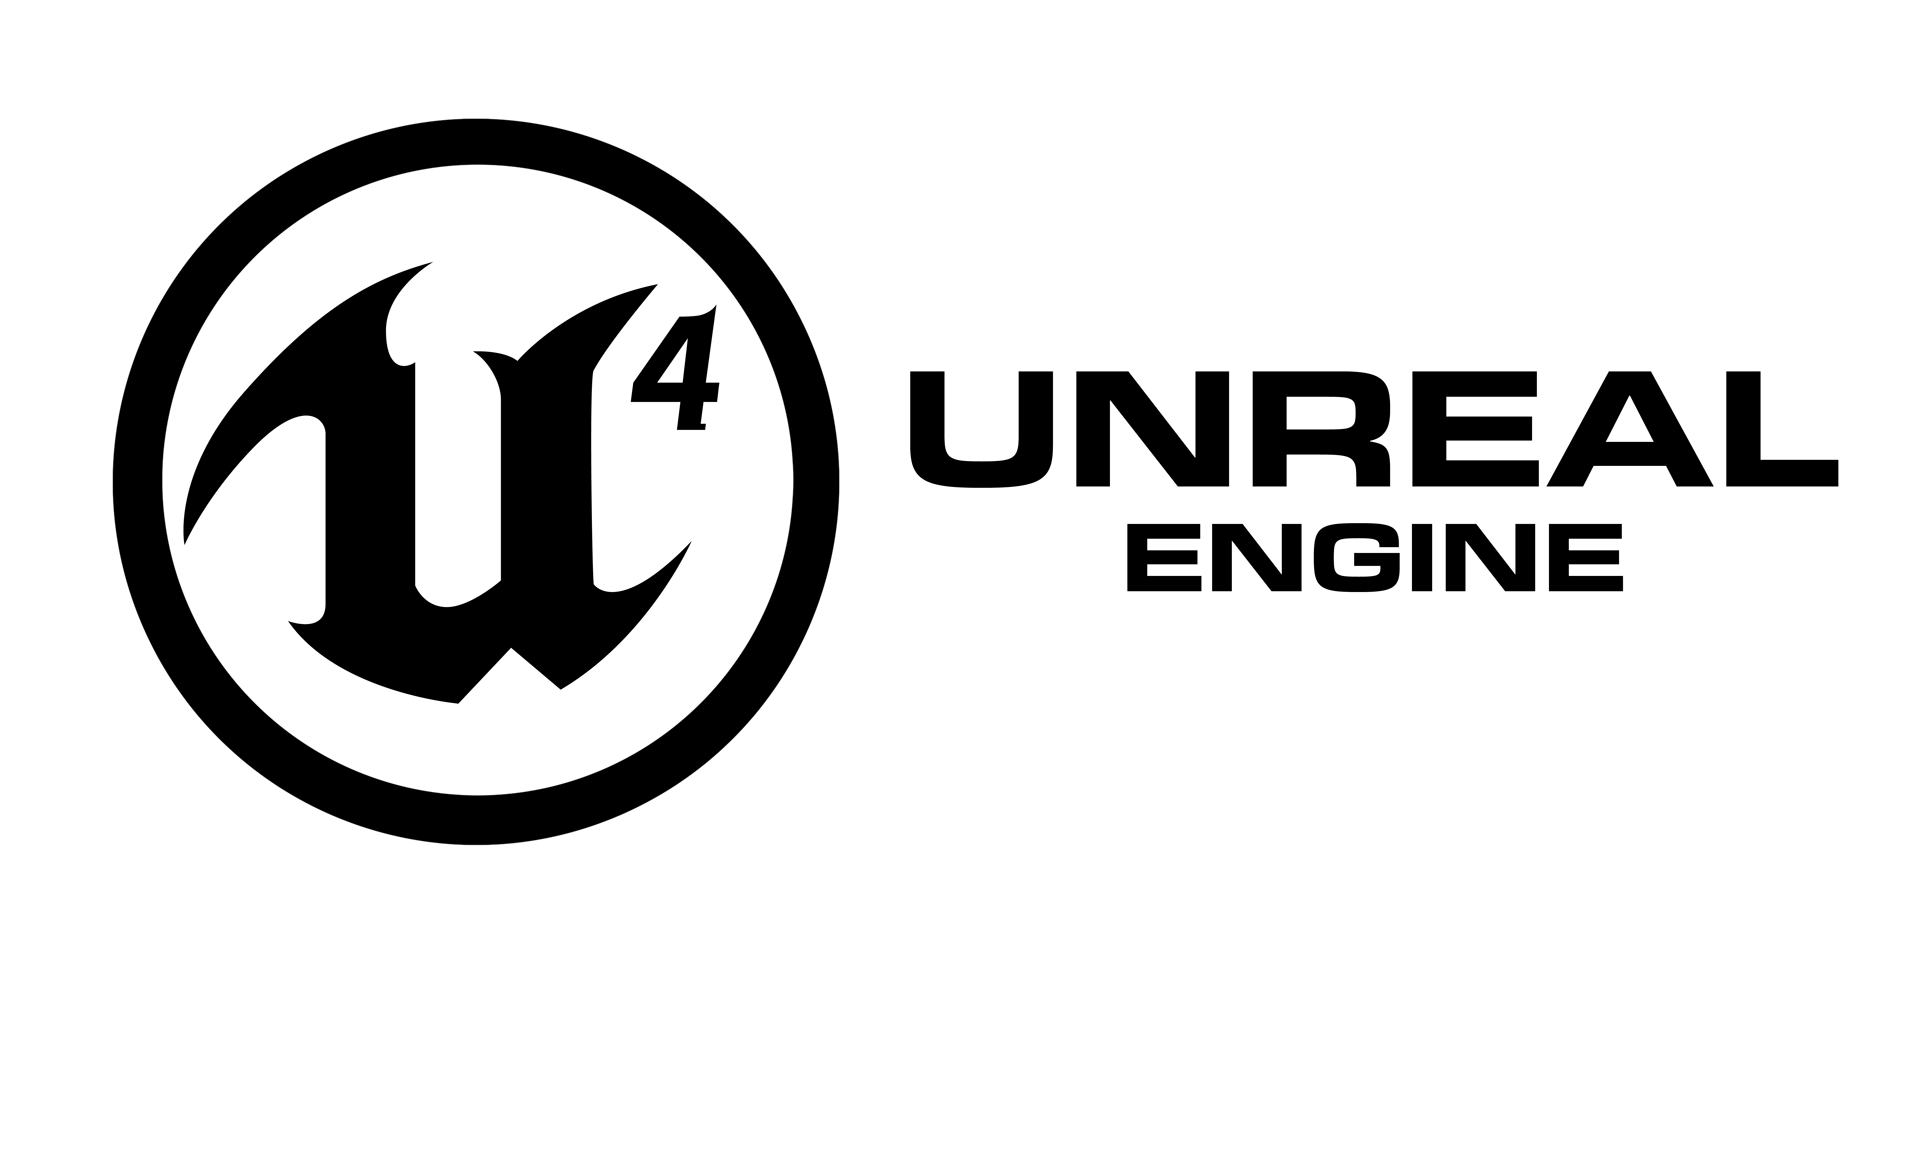 Unreal Engine 4 18 Update Brings Native Support for ARKit and ARCore